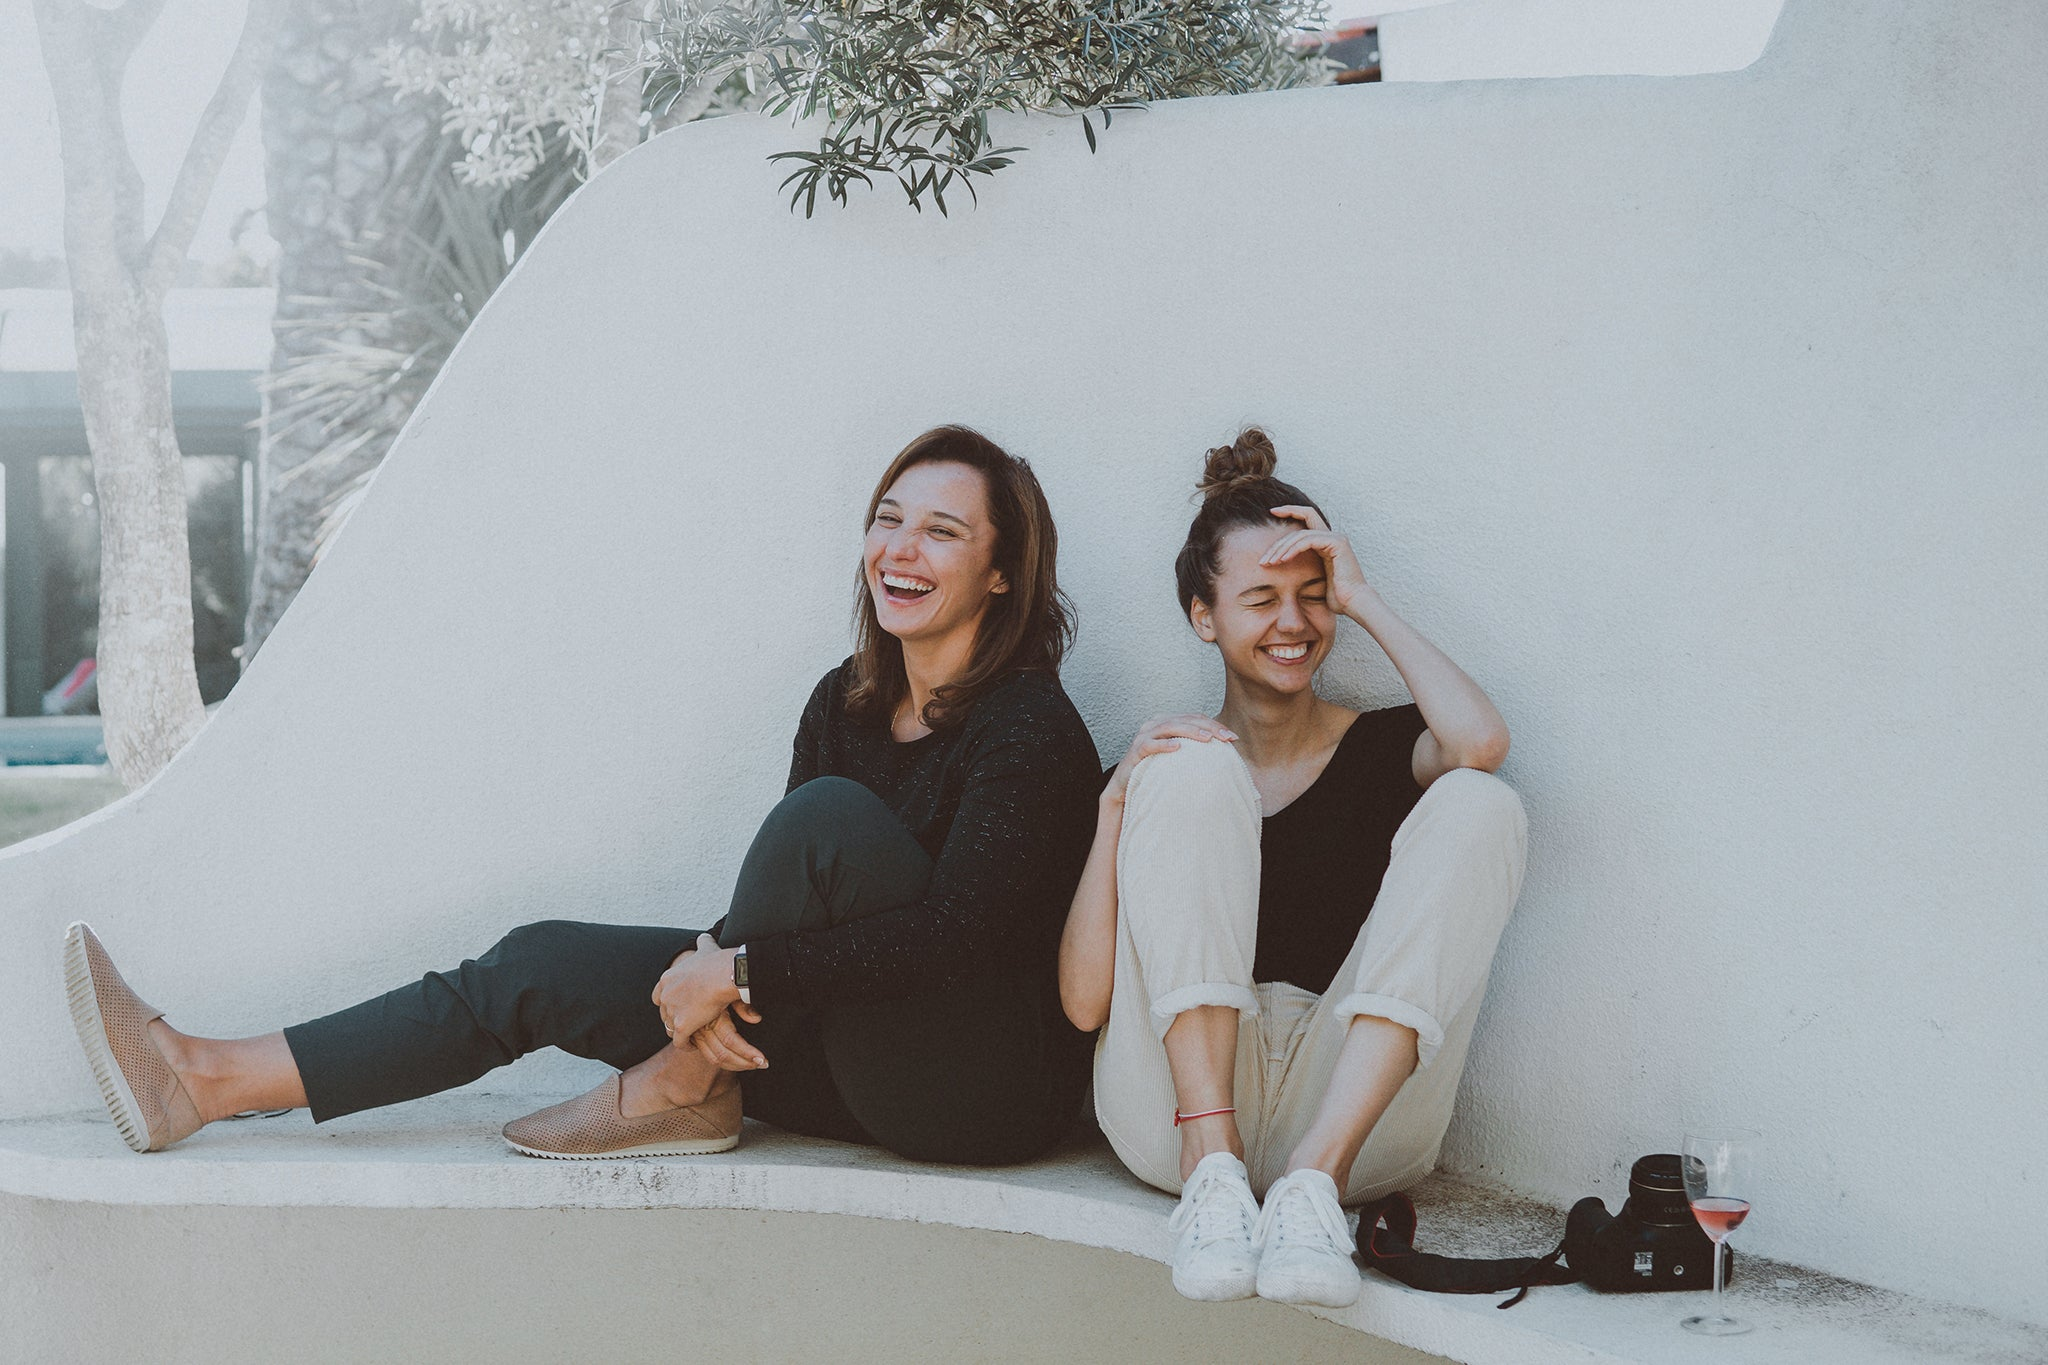 Image of two friends sitting outside and laughing together